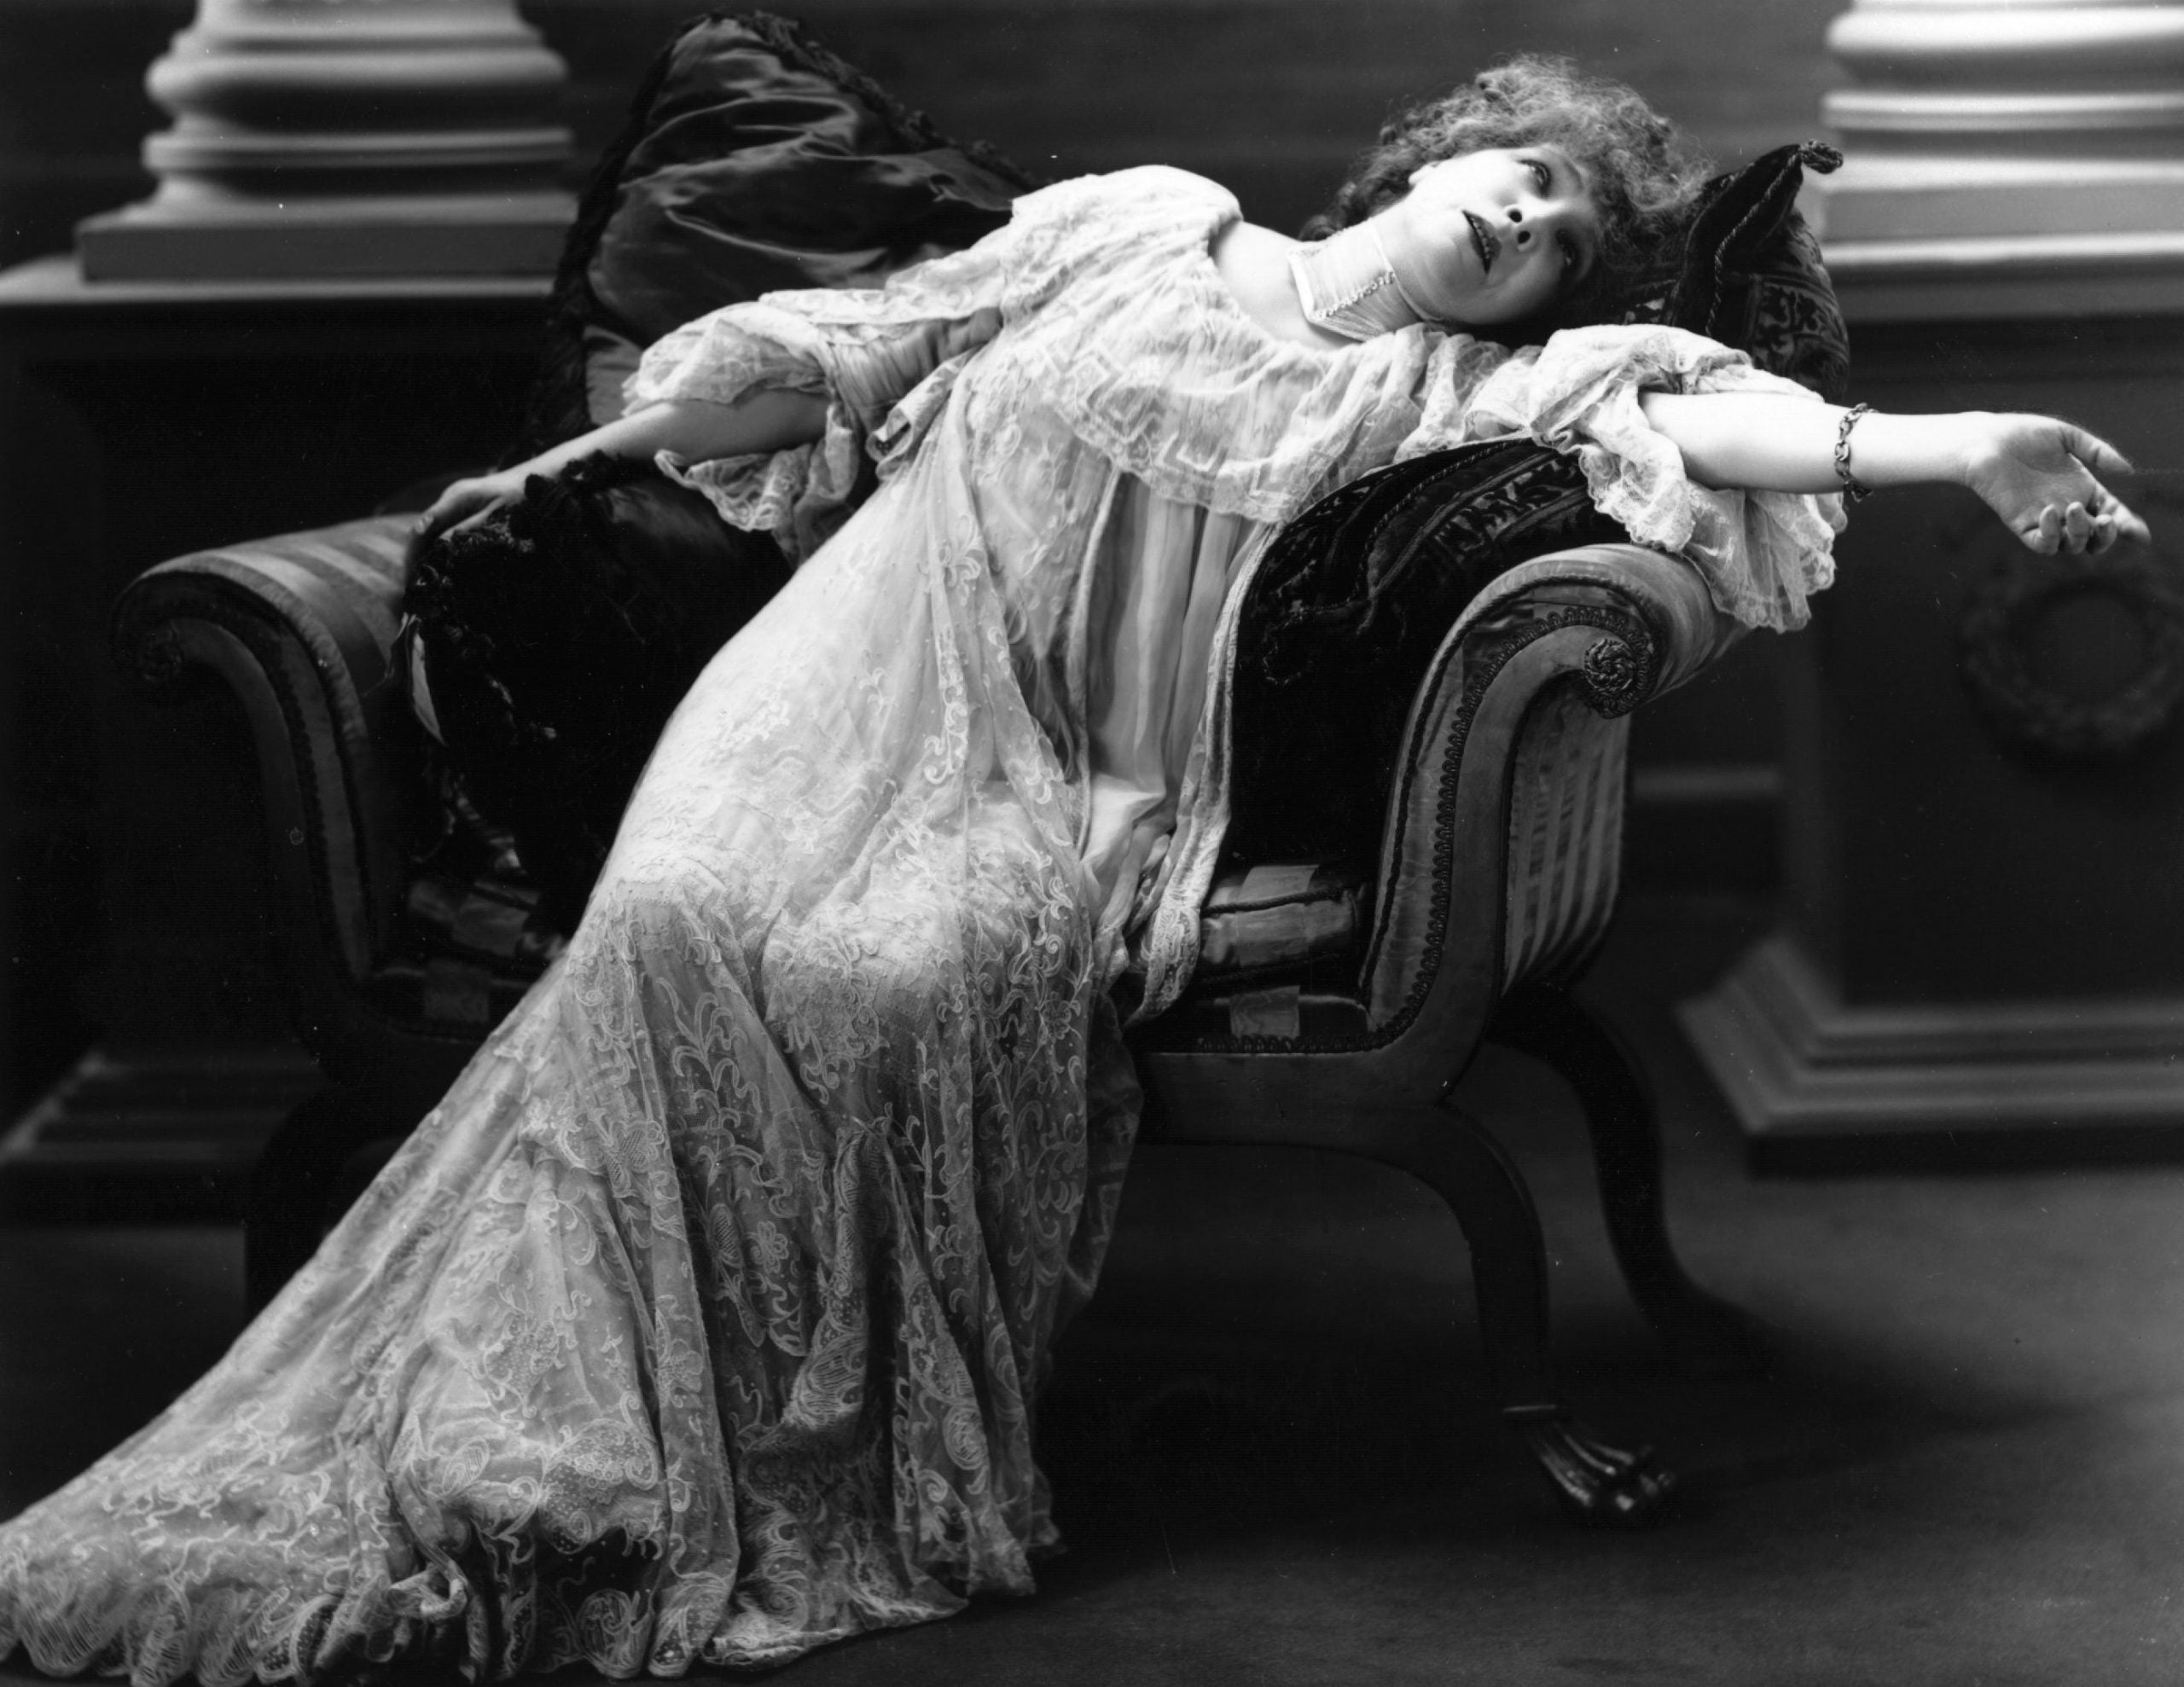 Are we still haunted by hysteria?